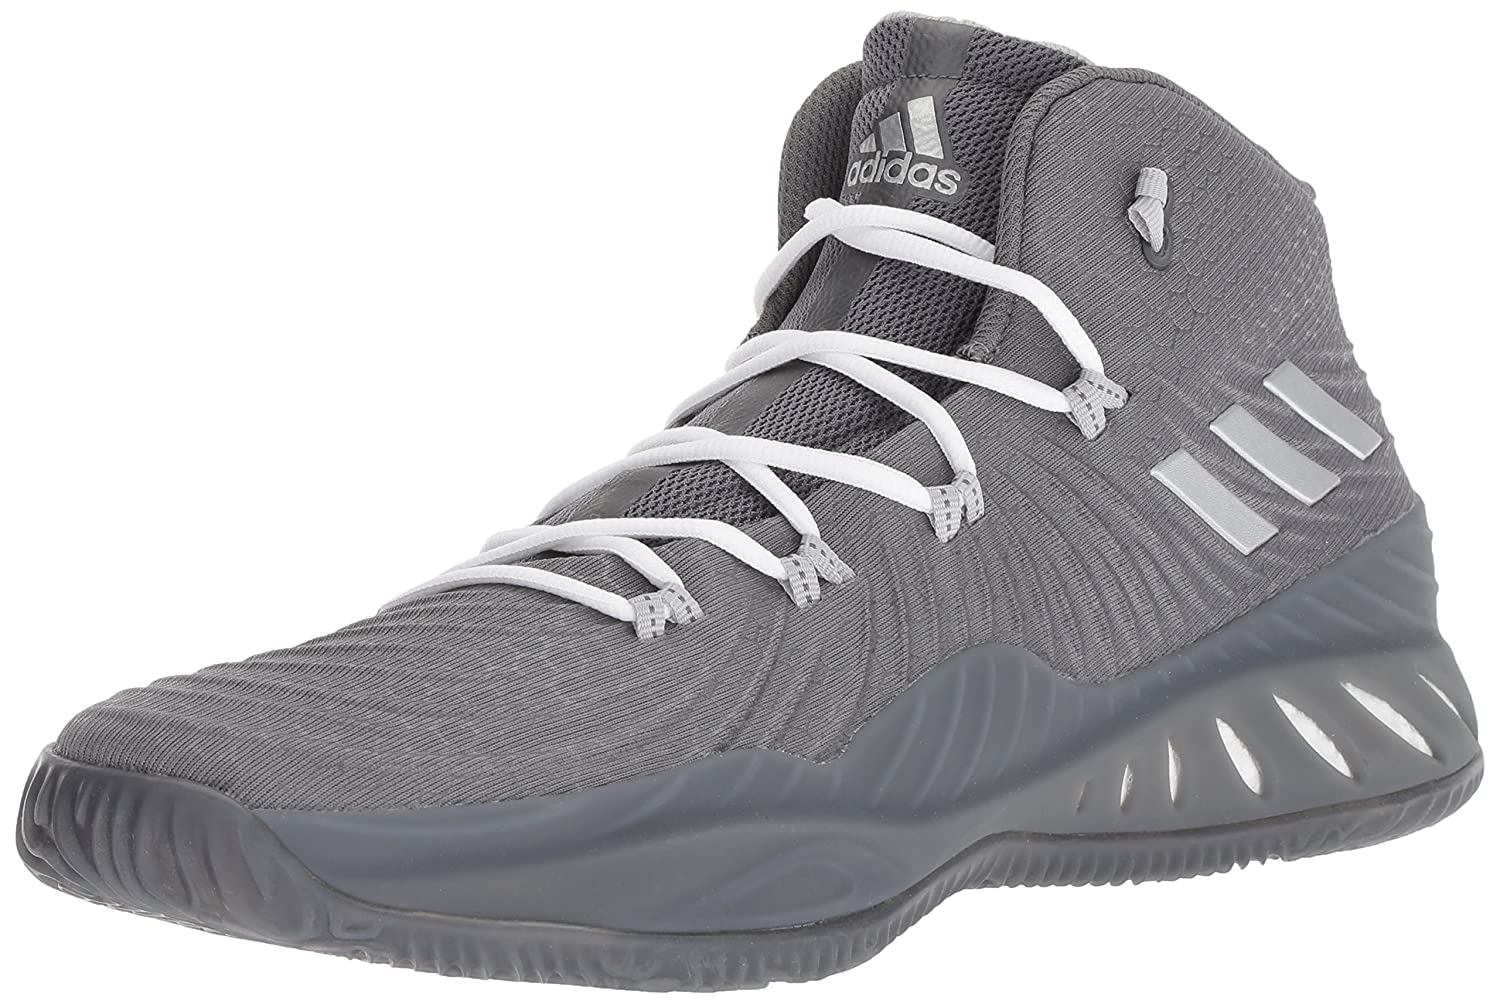 gris Four argent Metallic gris Two 41 EU adidas Crazy Explosive NVY SIL NVY (By3773)